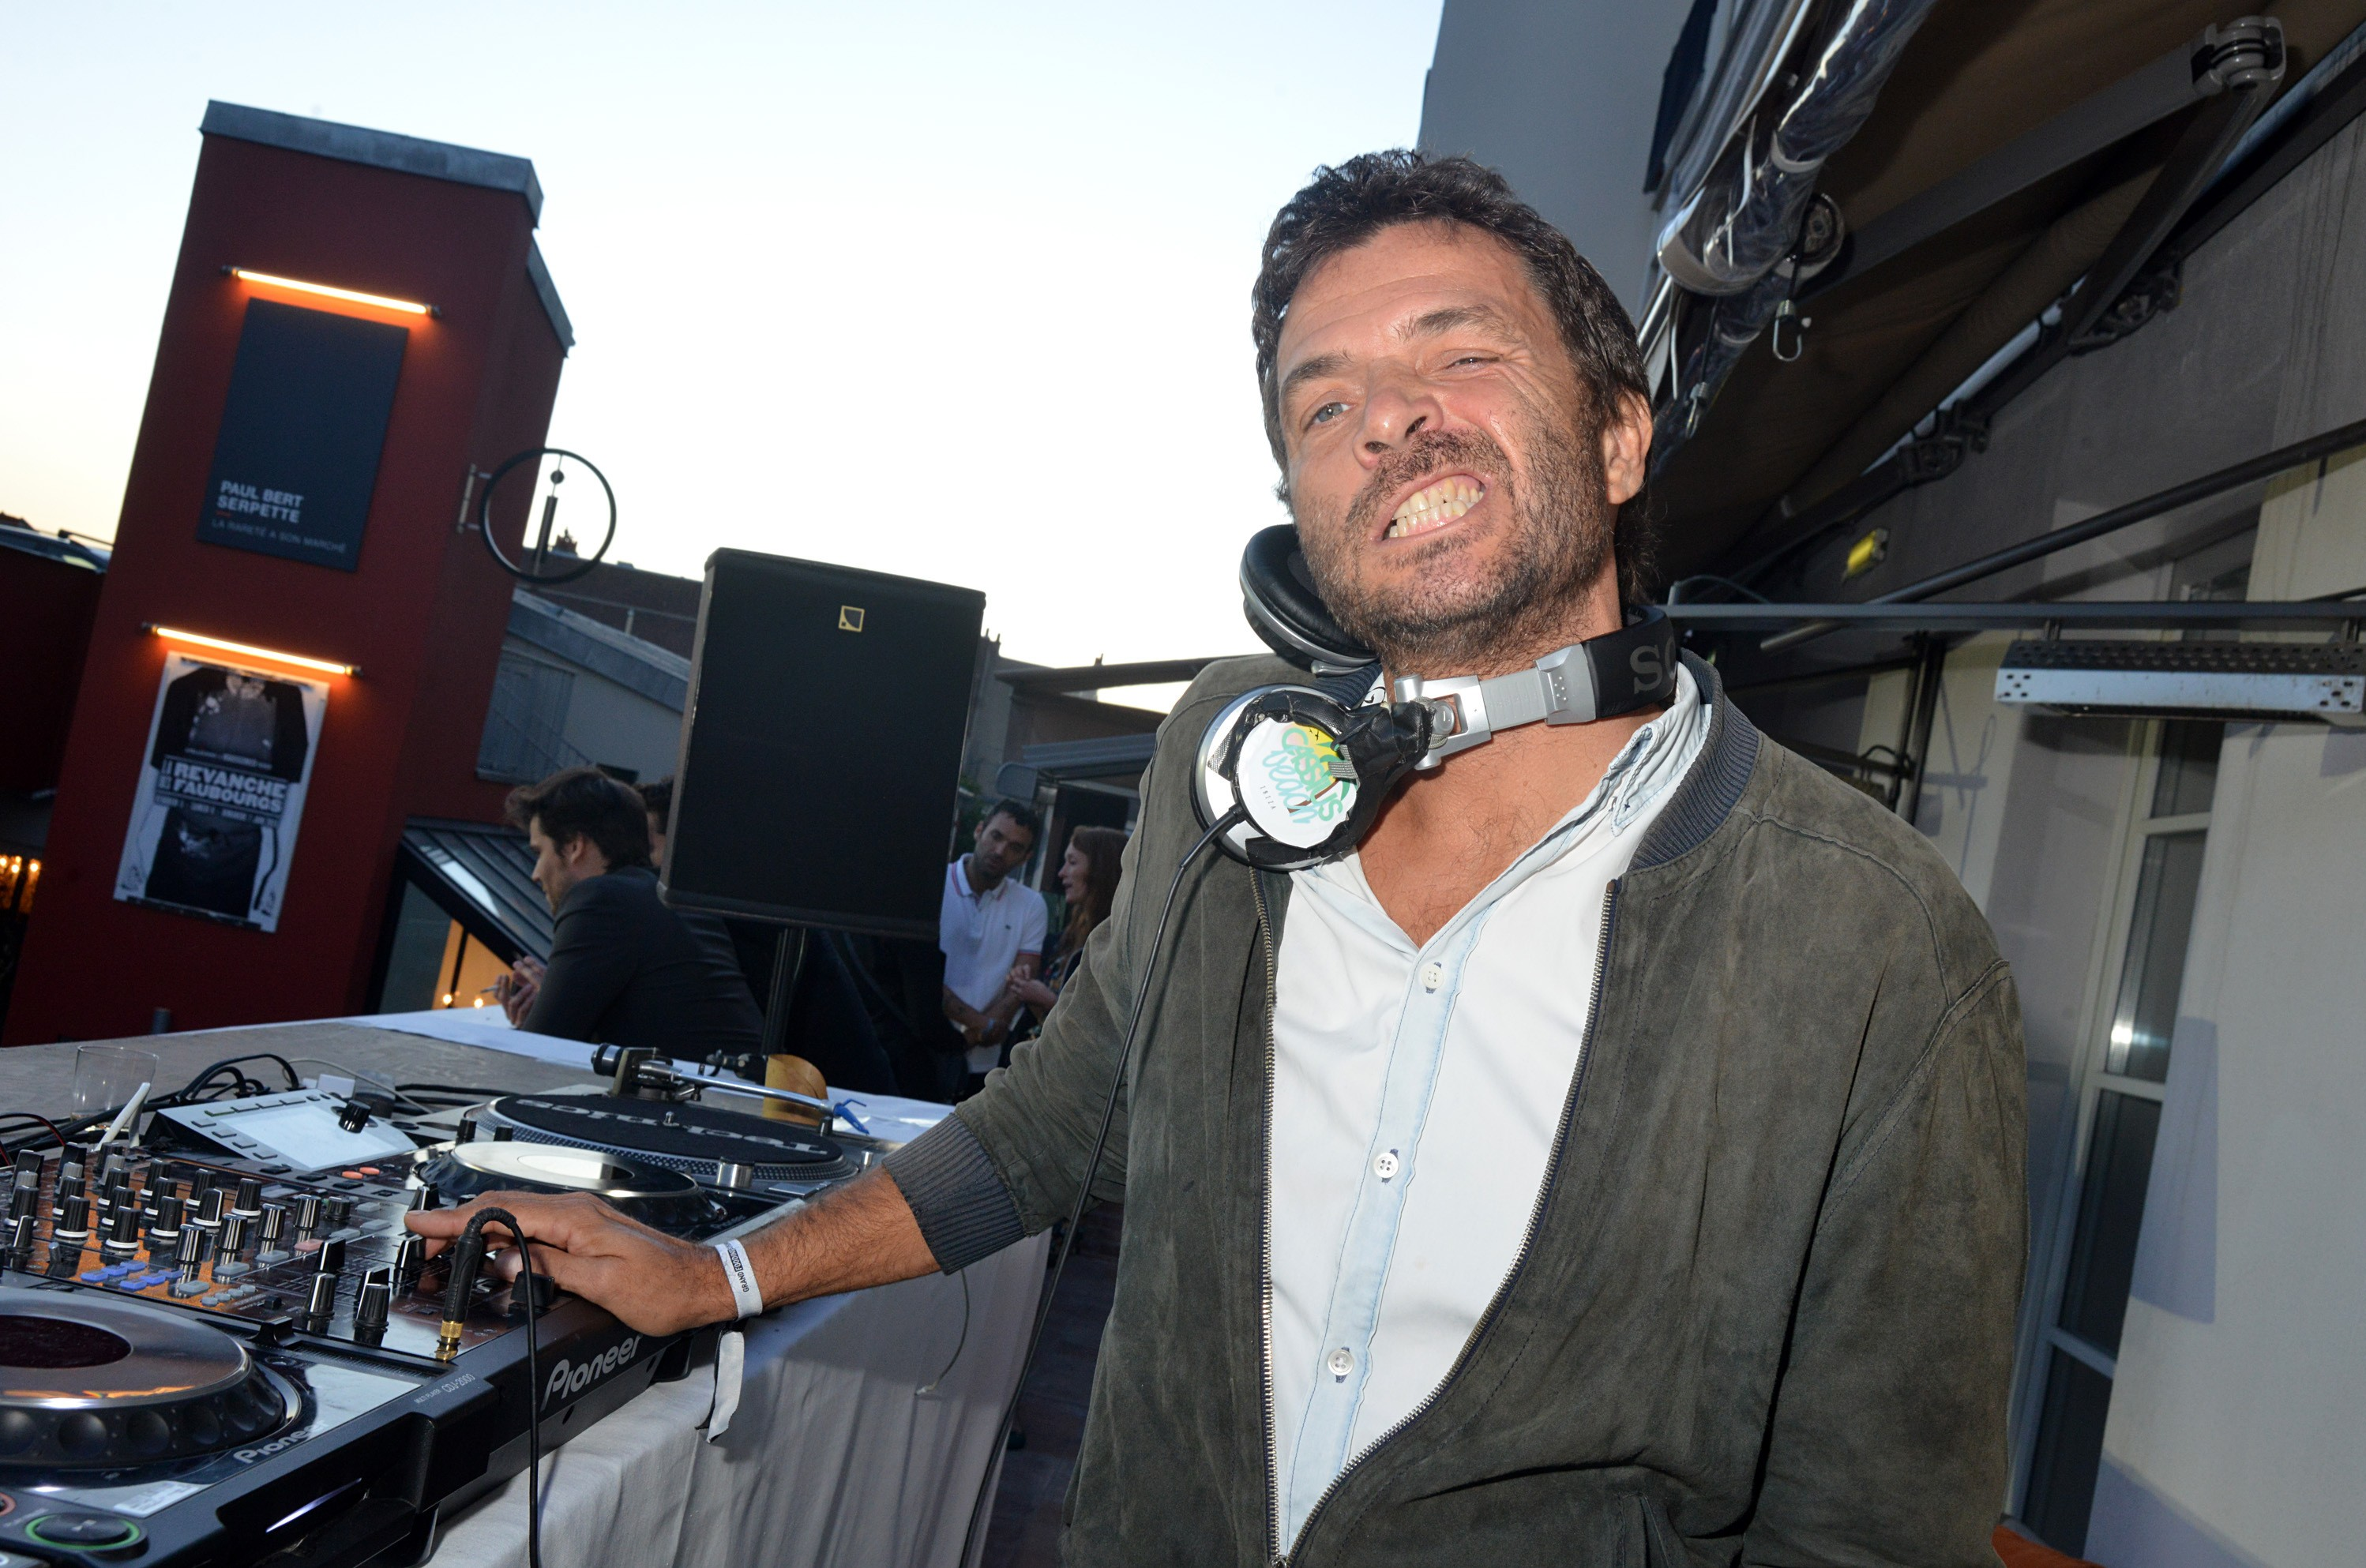 Philippe Zdar (Philippe Cerboneschi) from Cassius band performs during day two the Fooding 15th Anniversary Party at Marche Paul Bert Serpette Porte de Clignancourt on June 6, 2015 in Paris, France.